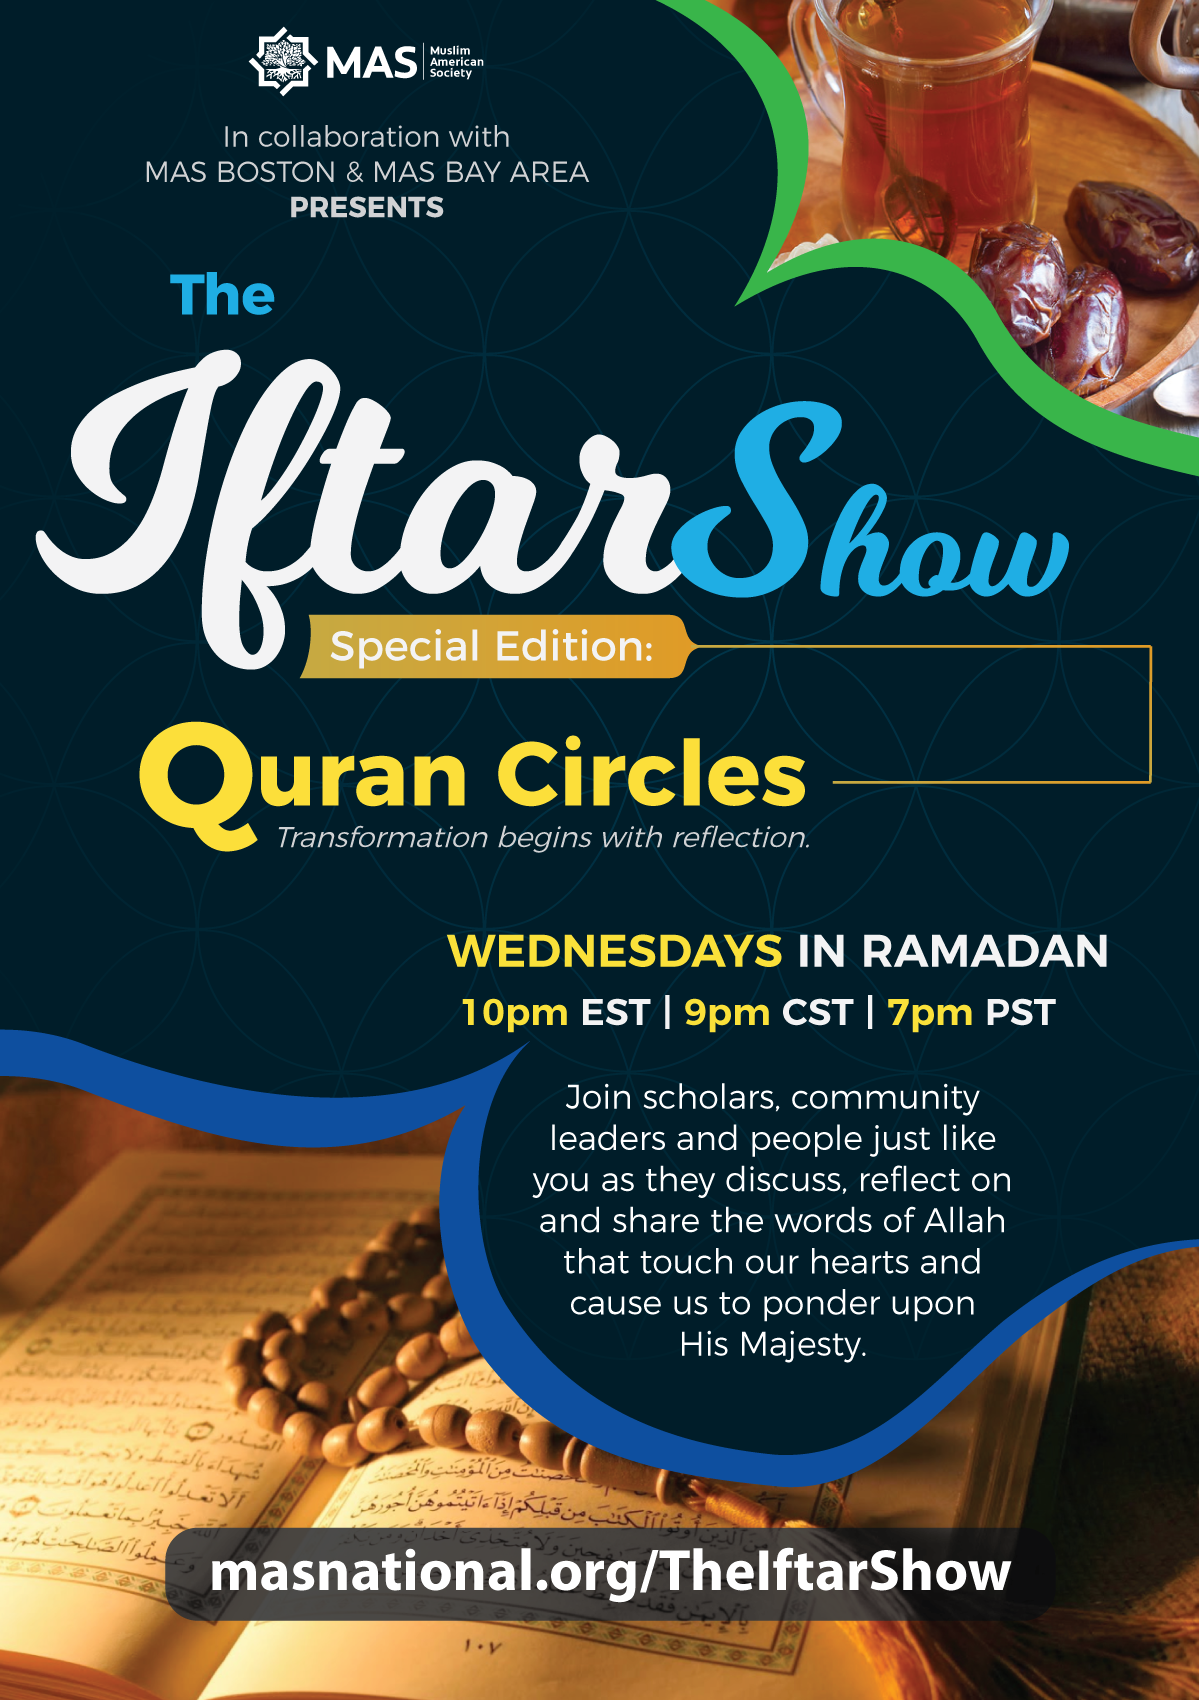 The Iftar Show